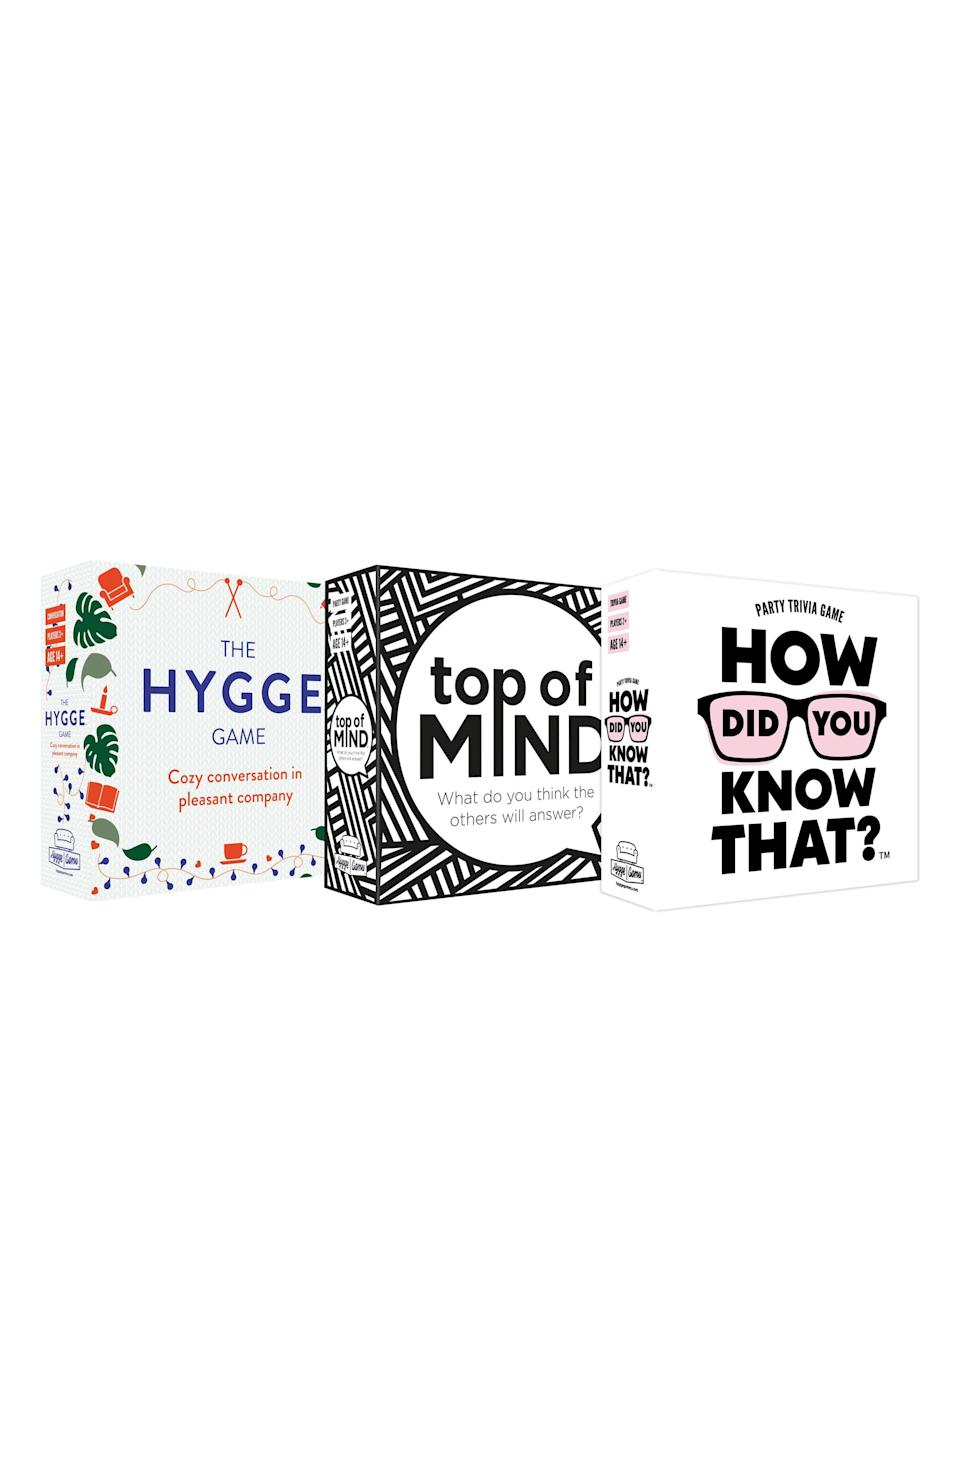 """<p><strong>Hygge Games</strong></p><p>nordstrom.com</p><p><strong>$50.00</strong></p><p><a href=""""https://go.redirectingat.com?id=74968X1596630&url=https%3A%2F%2Fwww.nordstrom.com%2Fs%2Fhyyge-games-set-of-3-games%2F5748628&sref=https%3A%2F%2Fwww.cosmopolitan.com%2Flifestyle%2Fg5199%2Flast-minute-gifts%2F"""" rel=""""nofollow noopener"""" target=""""_blank"""" data-ylk=""""slk:Shop Now"""" class=""""link rapid-noclick-resp"""">Shop Now</a></p><p>If he's spending a lottt of time with his roommates lately or Zooming with this friends, he could use this set of three different games to liven up the party. This trio includes a party trivia game, conversation starters, and a guessing game.</p>"""